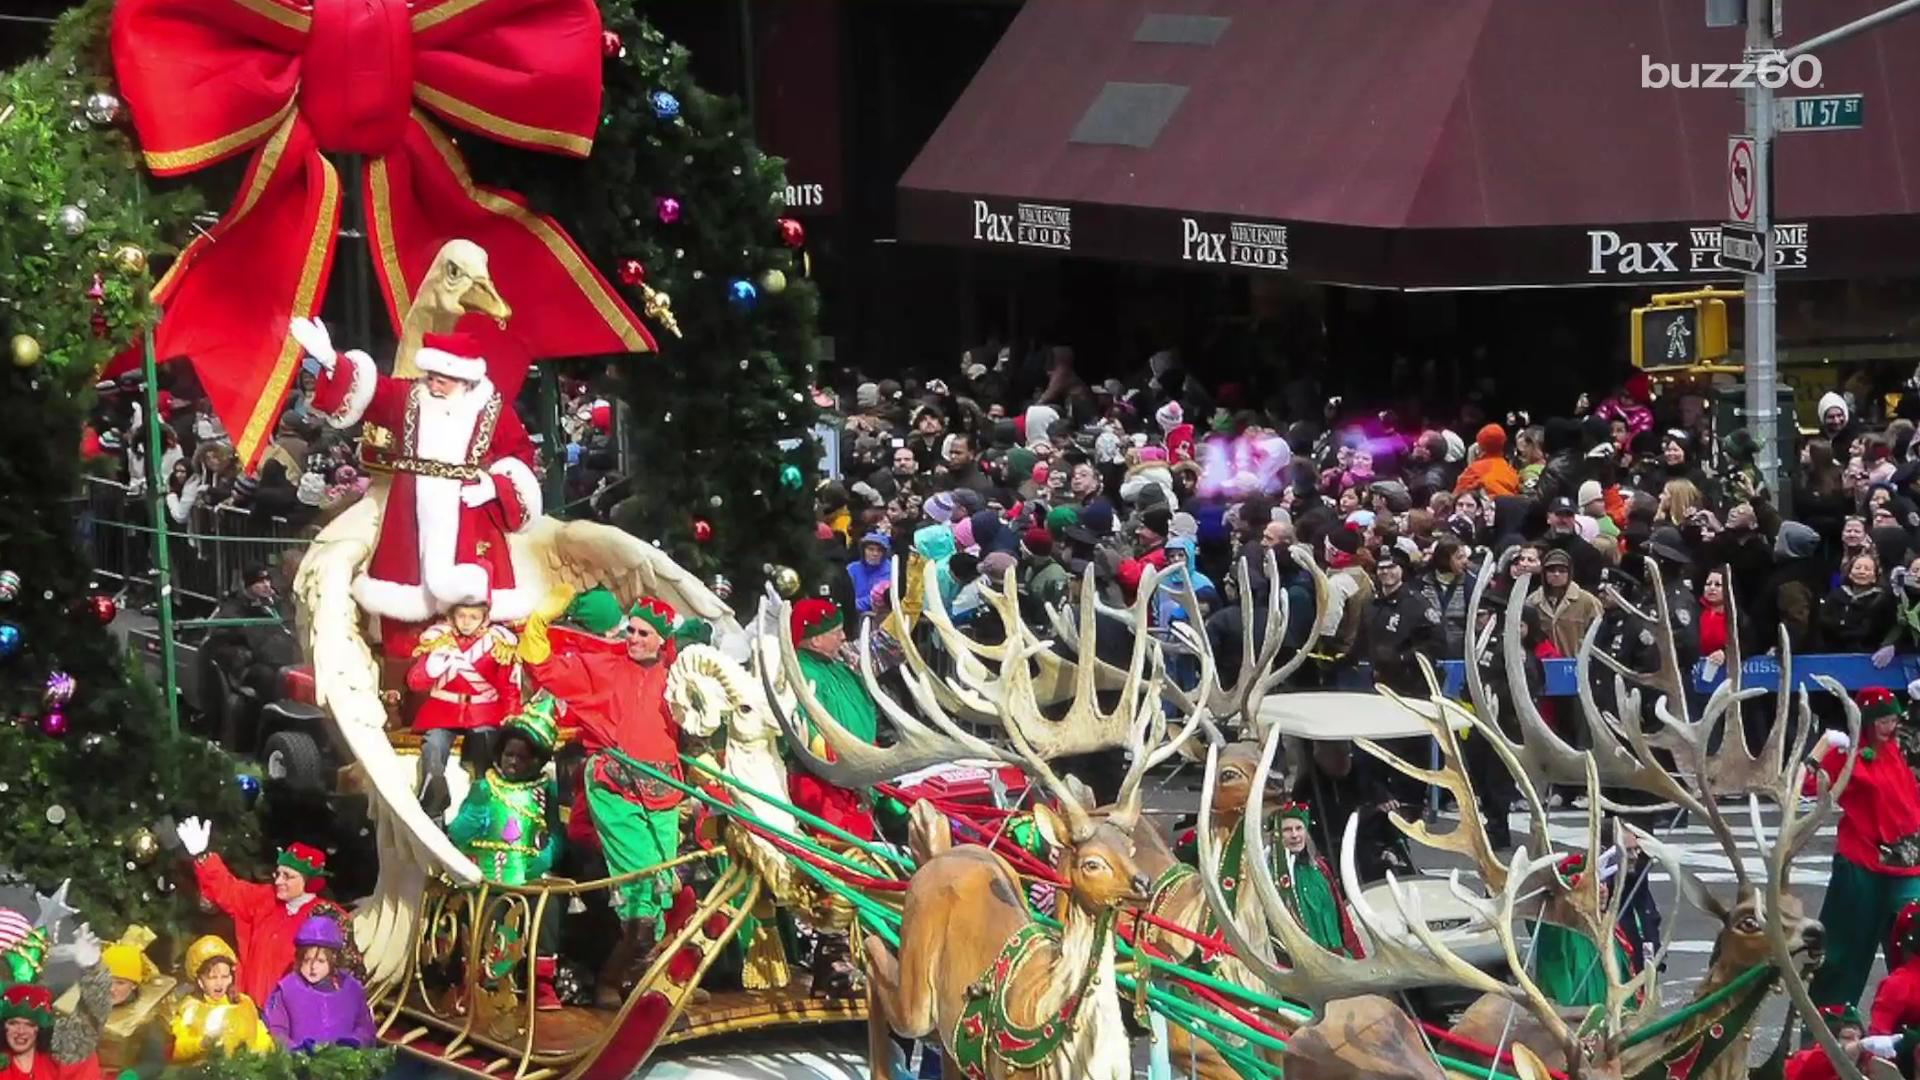 Macys Hours Christmas Eve 2019.7 Things You May Not Know About The Macy S Thanksgiving Day Parade